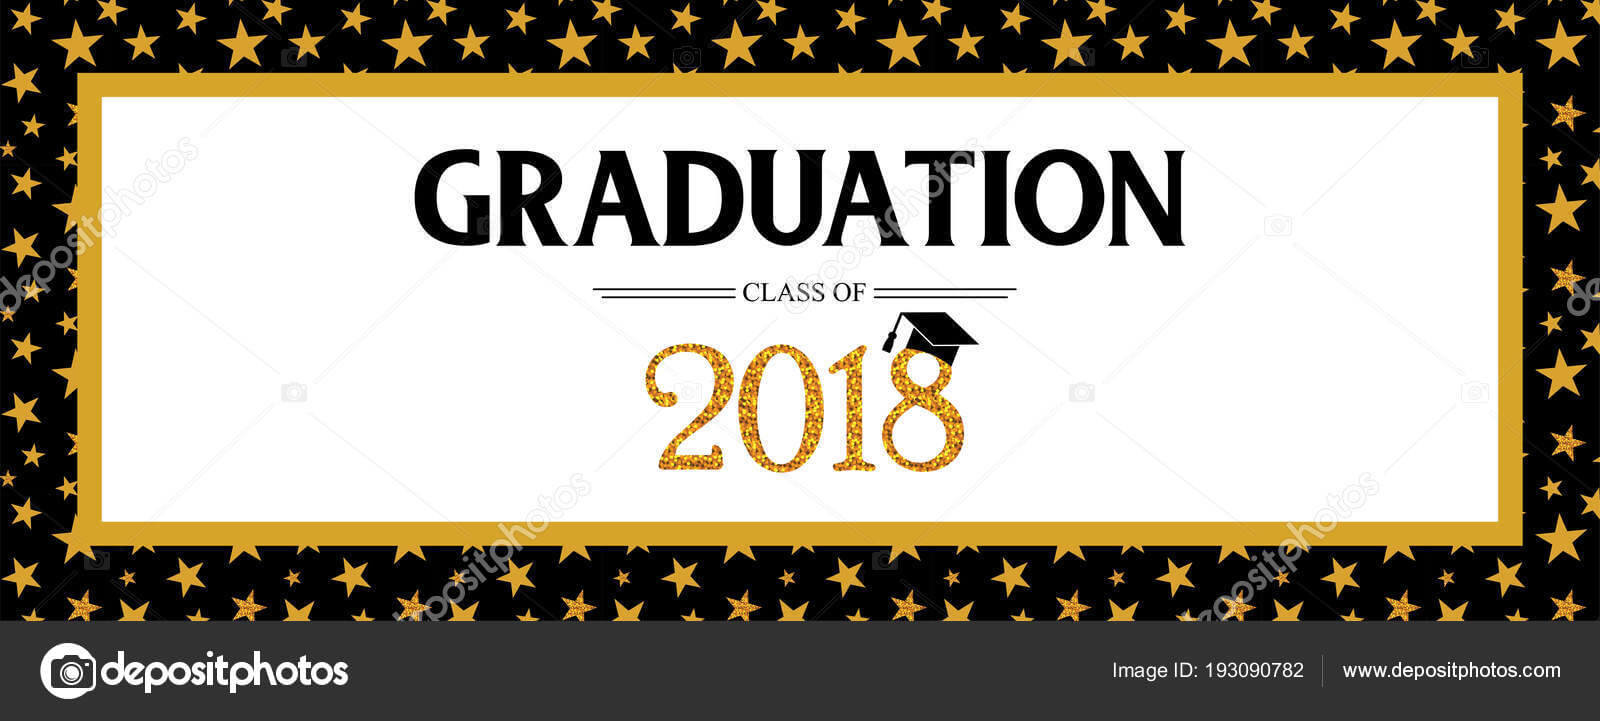 Graduation Banner Template | Graduation Class Of 2018 Throughout Graduation Banner Template